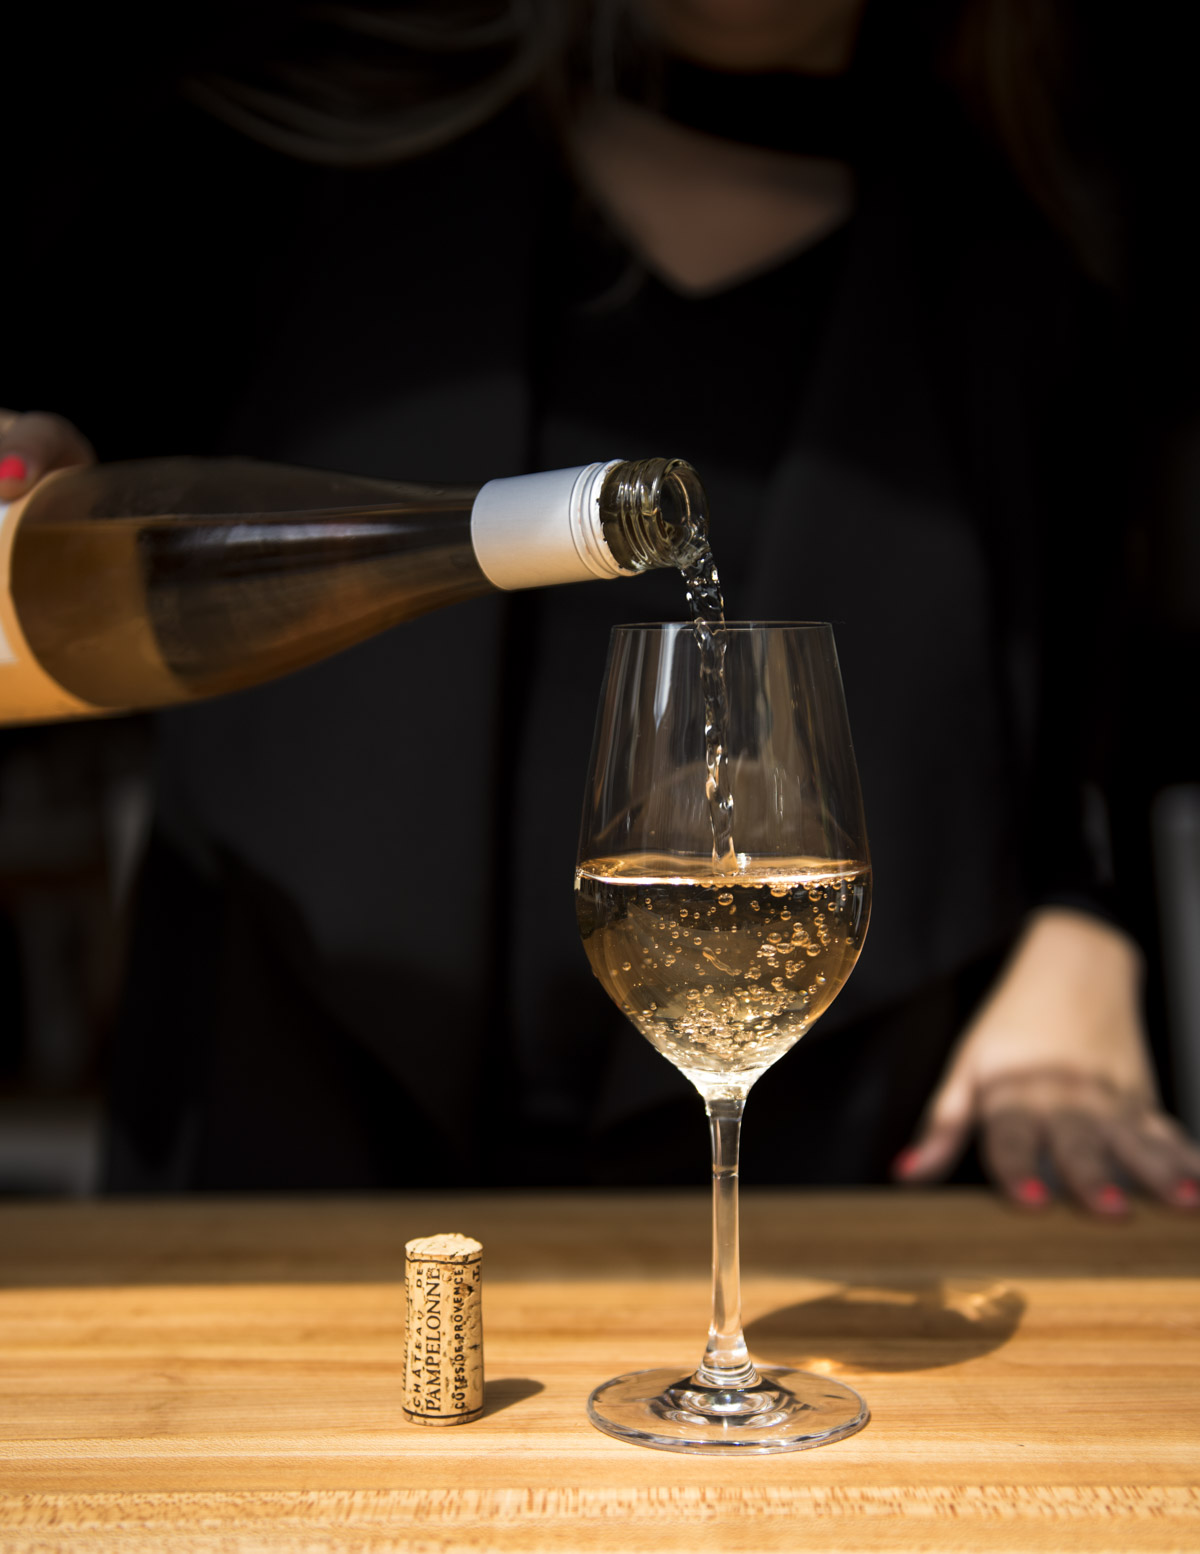 sidephoto-person-pouring-whitewine-into-wine-glass.jpg